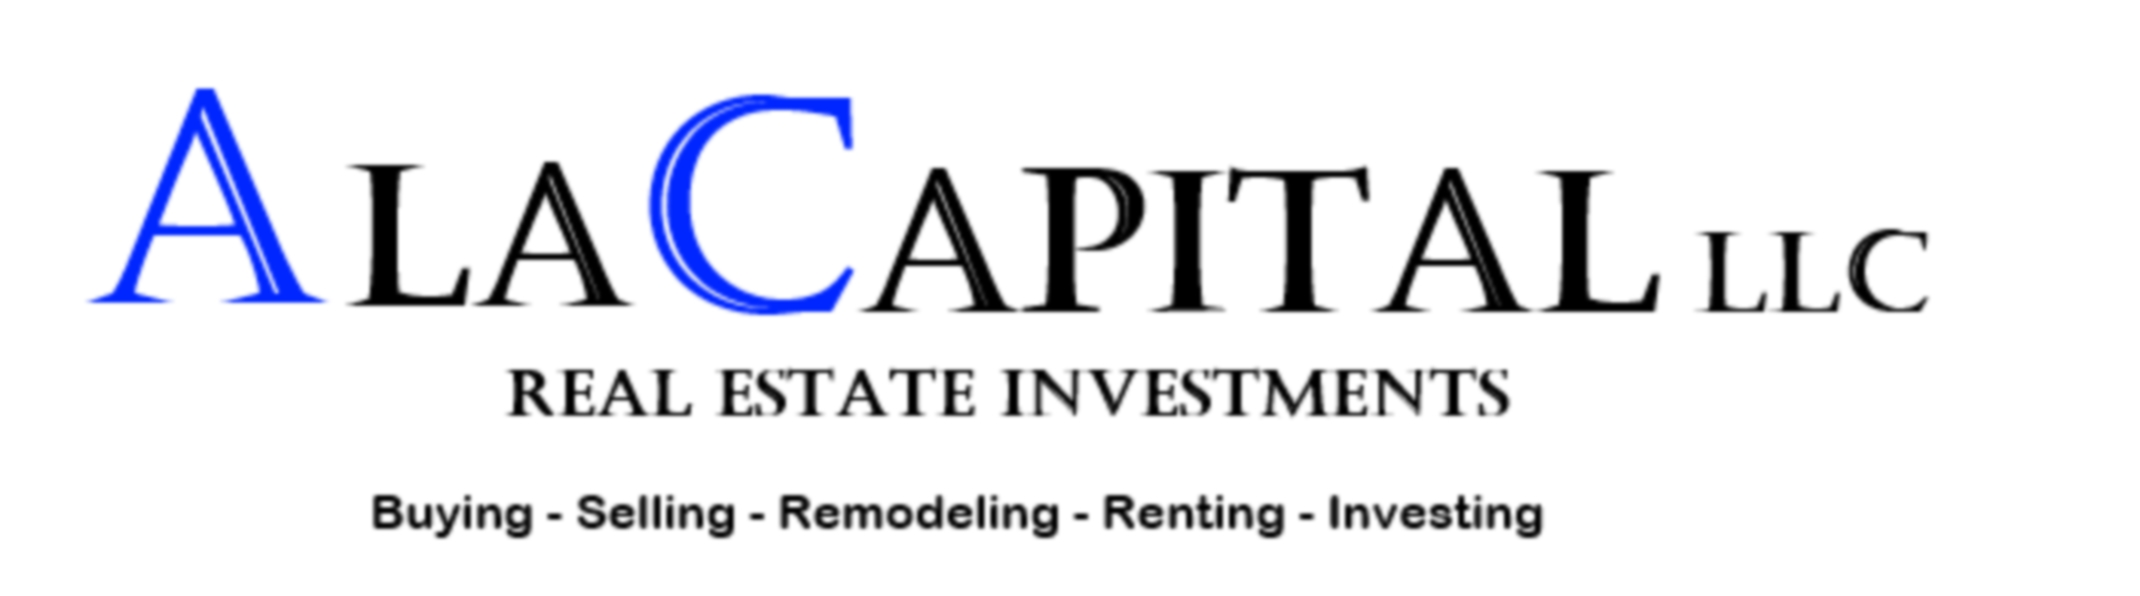 AlaCapital LLC